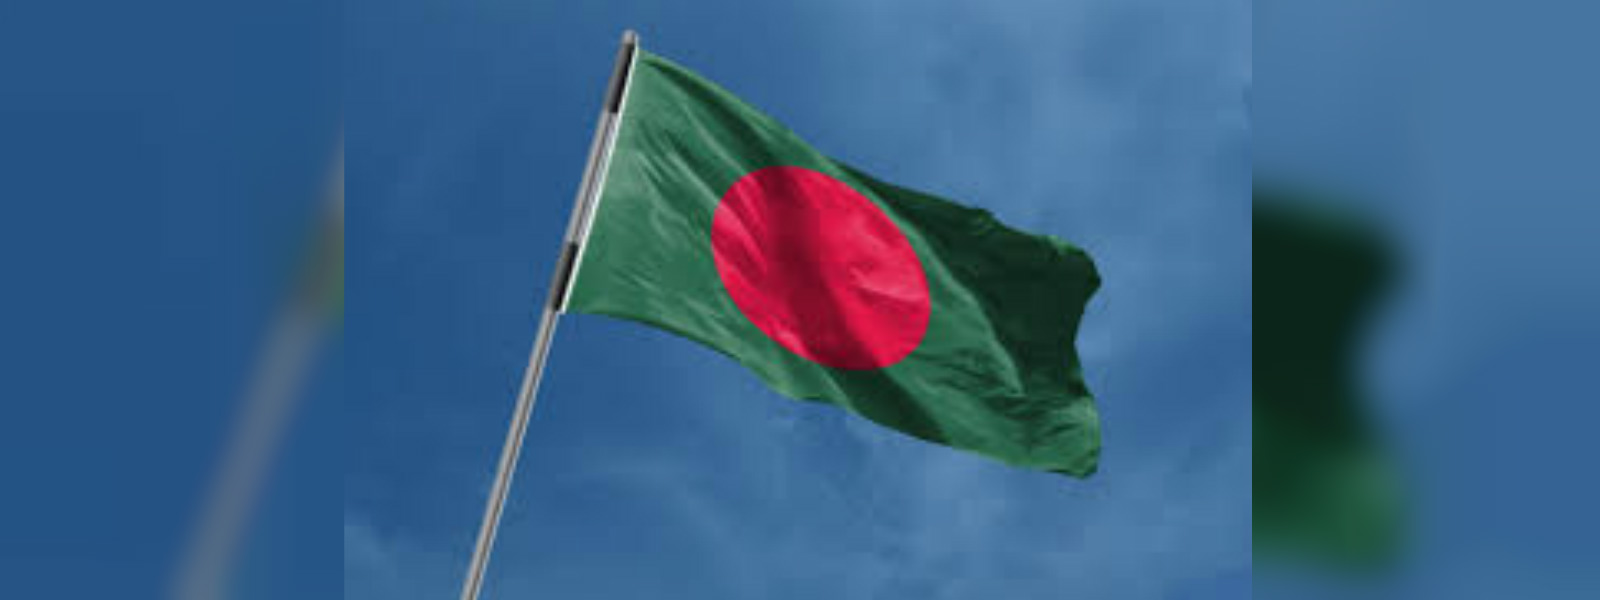 Bangladesh HC issues release on arrest of 4 nationals